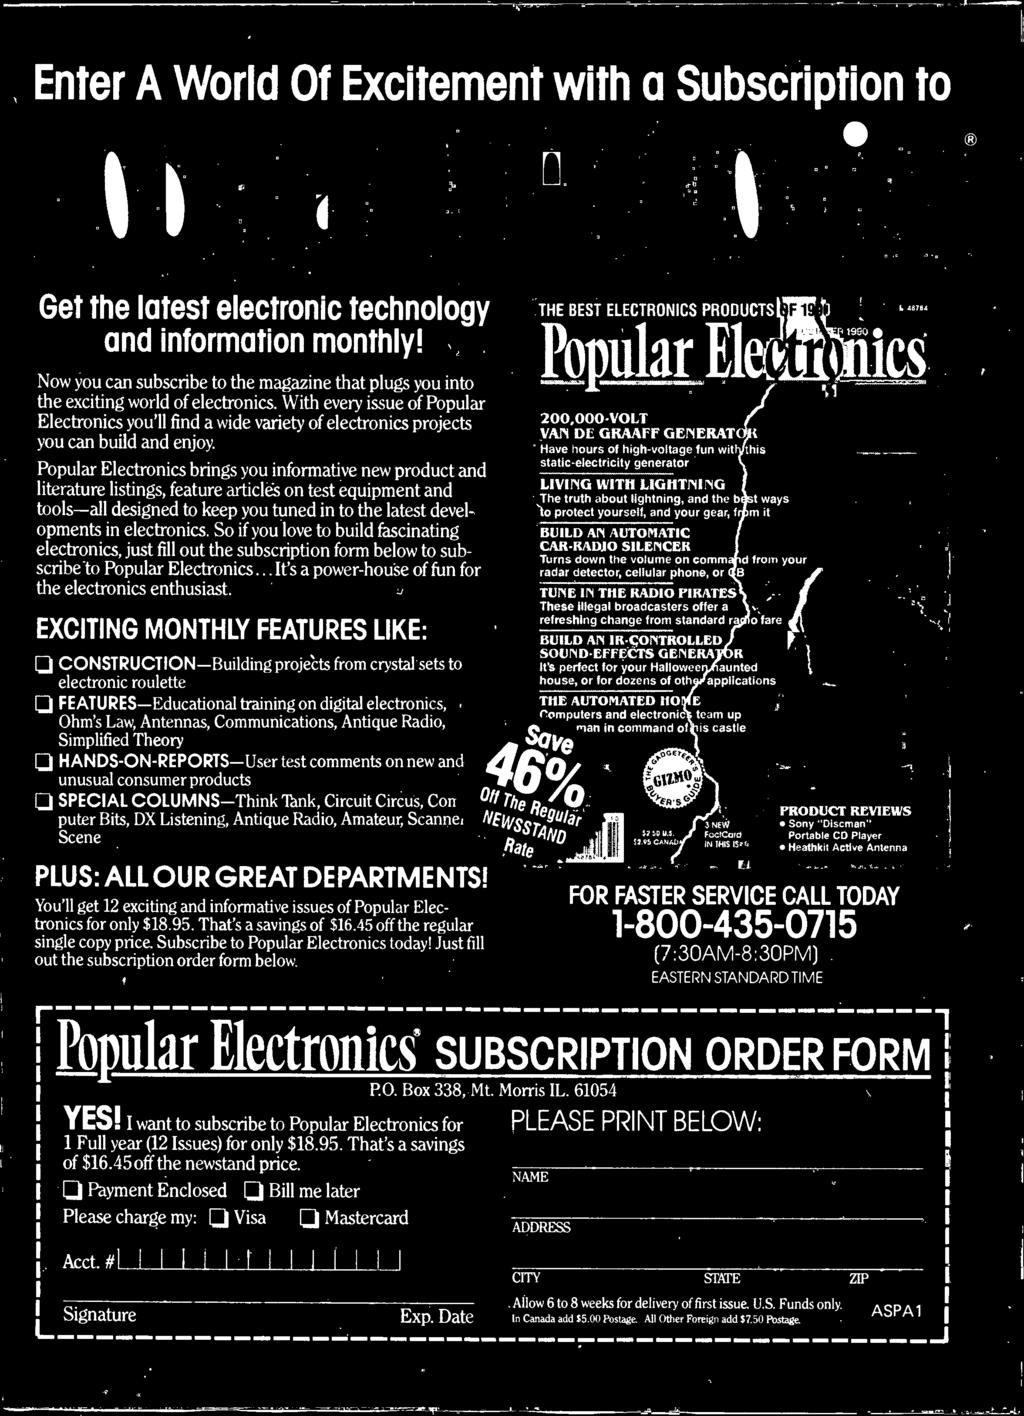 electronics. So if you love to build fascinating electronics, just fill out the subscription form below to subscribe to Popular Electronics... It's a power -house of fun for the electronics enthusiast.